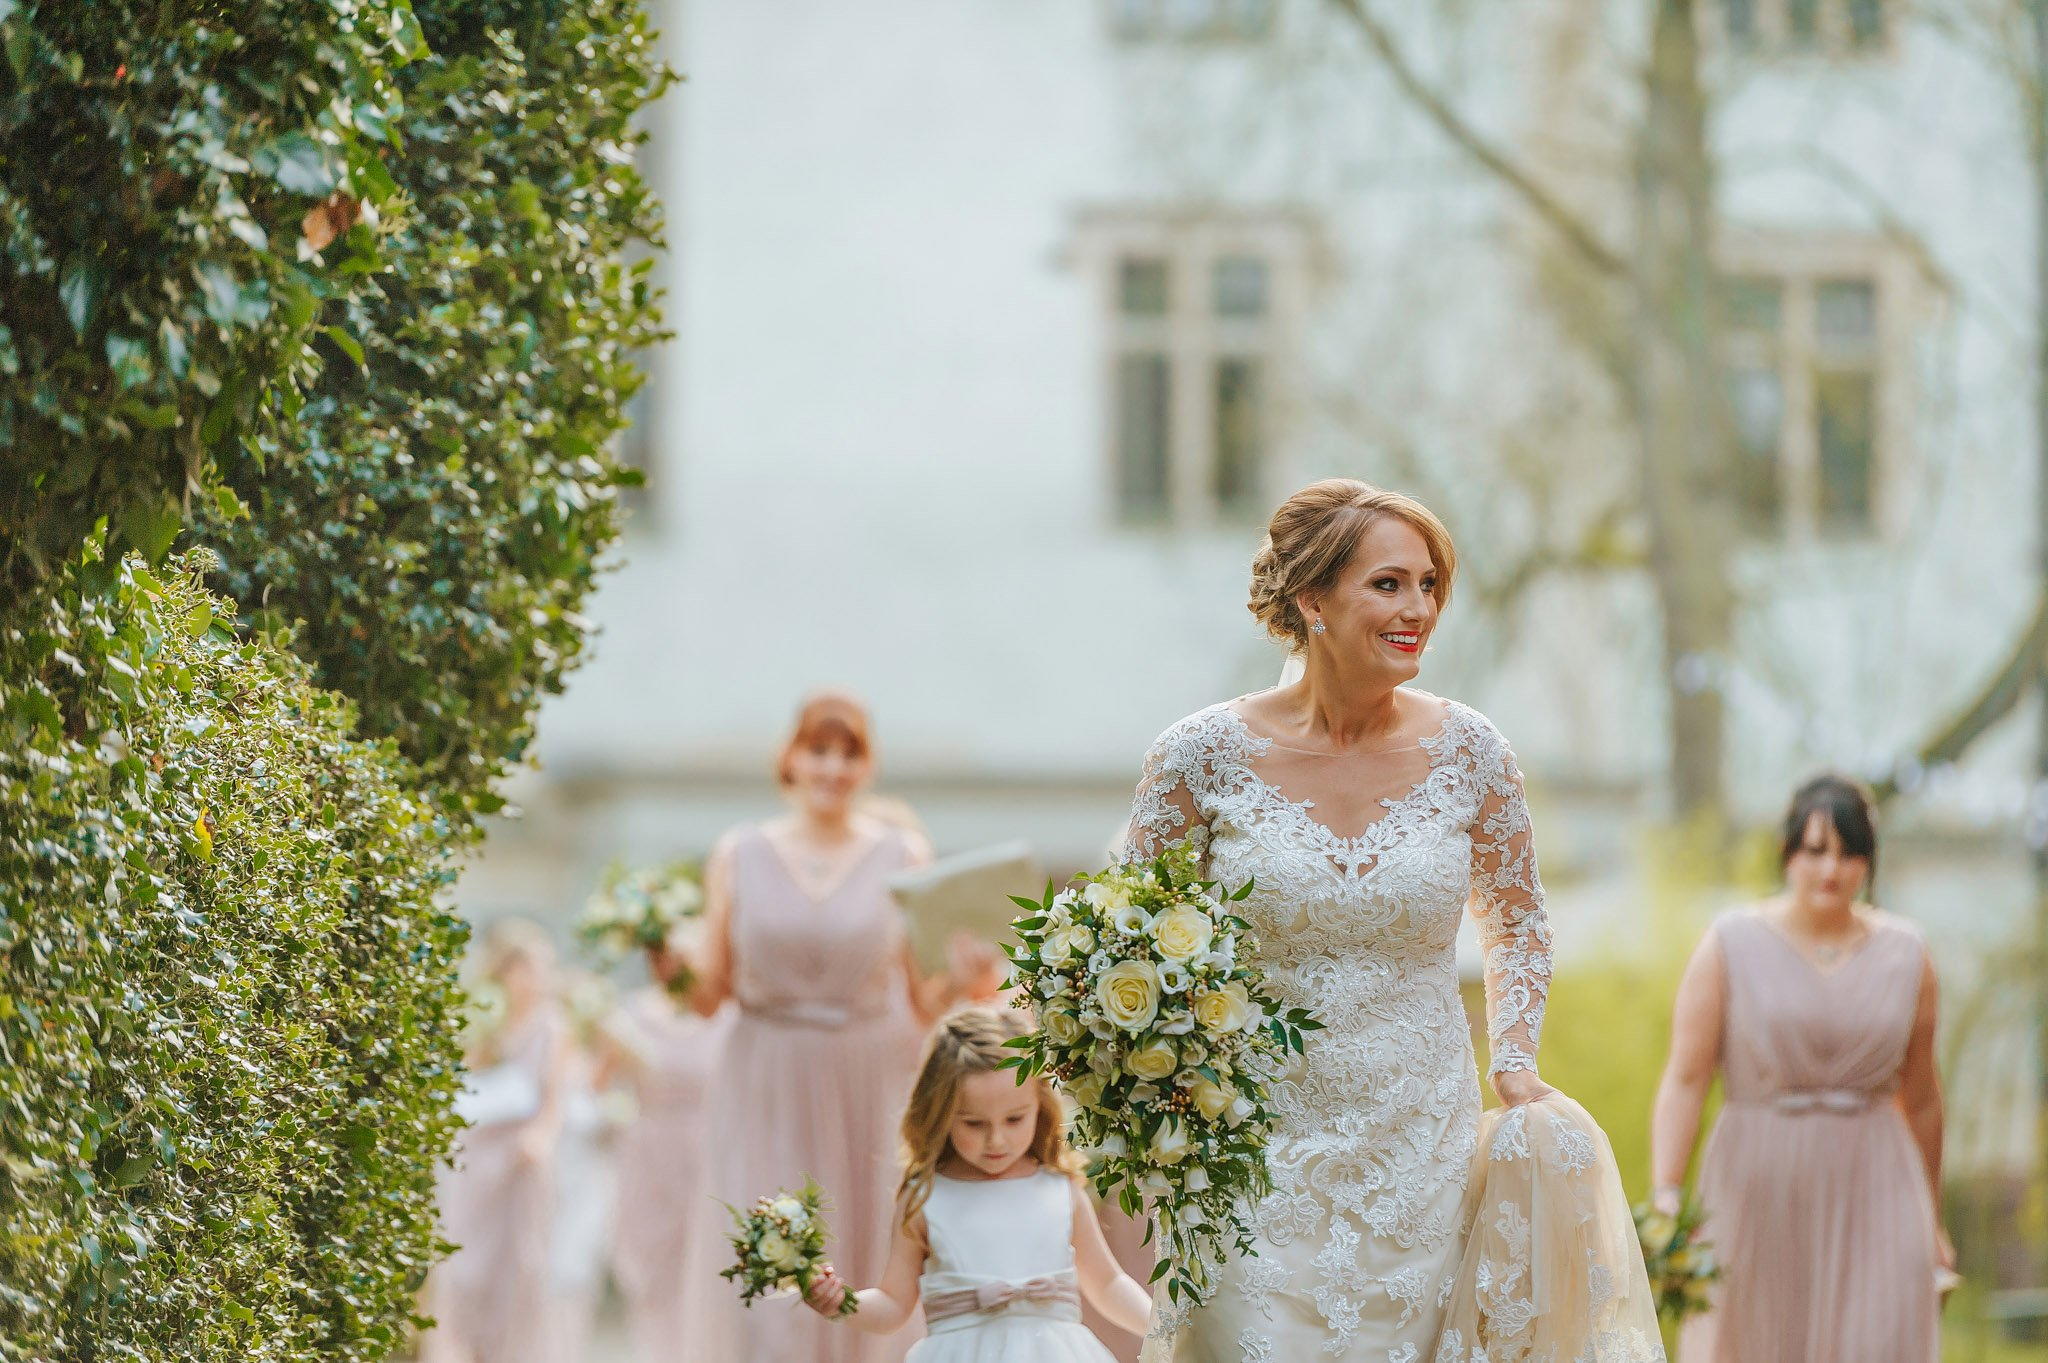 coombe abbey wedding coventry 39 - Coombe Abbey wedding in Coventry, Warwickshire - Sam + Matt